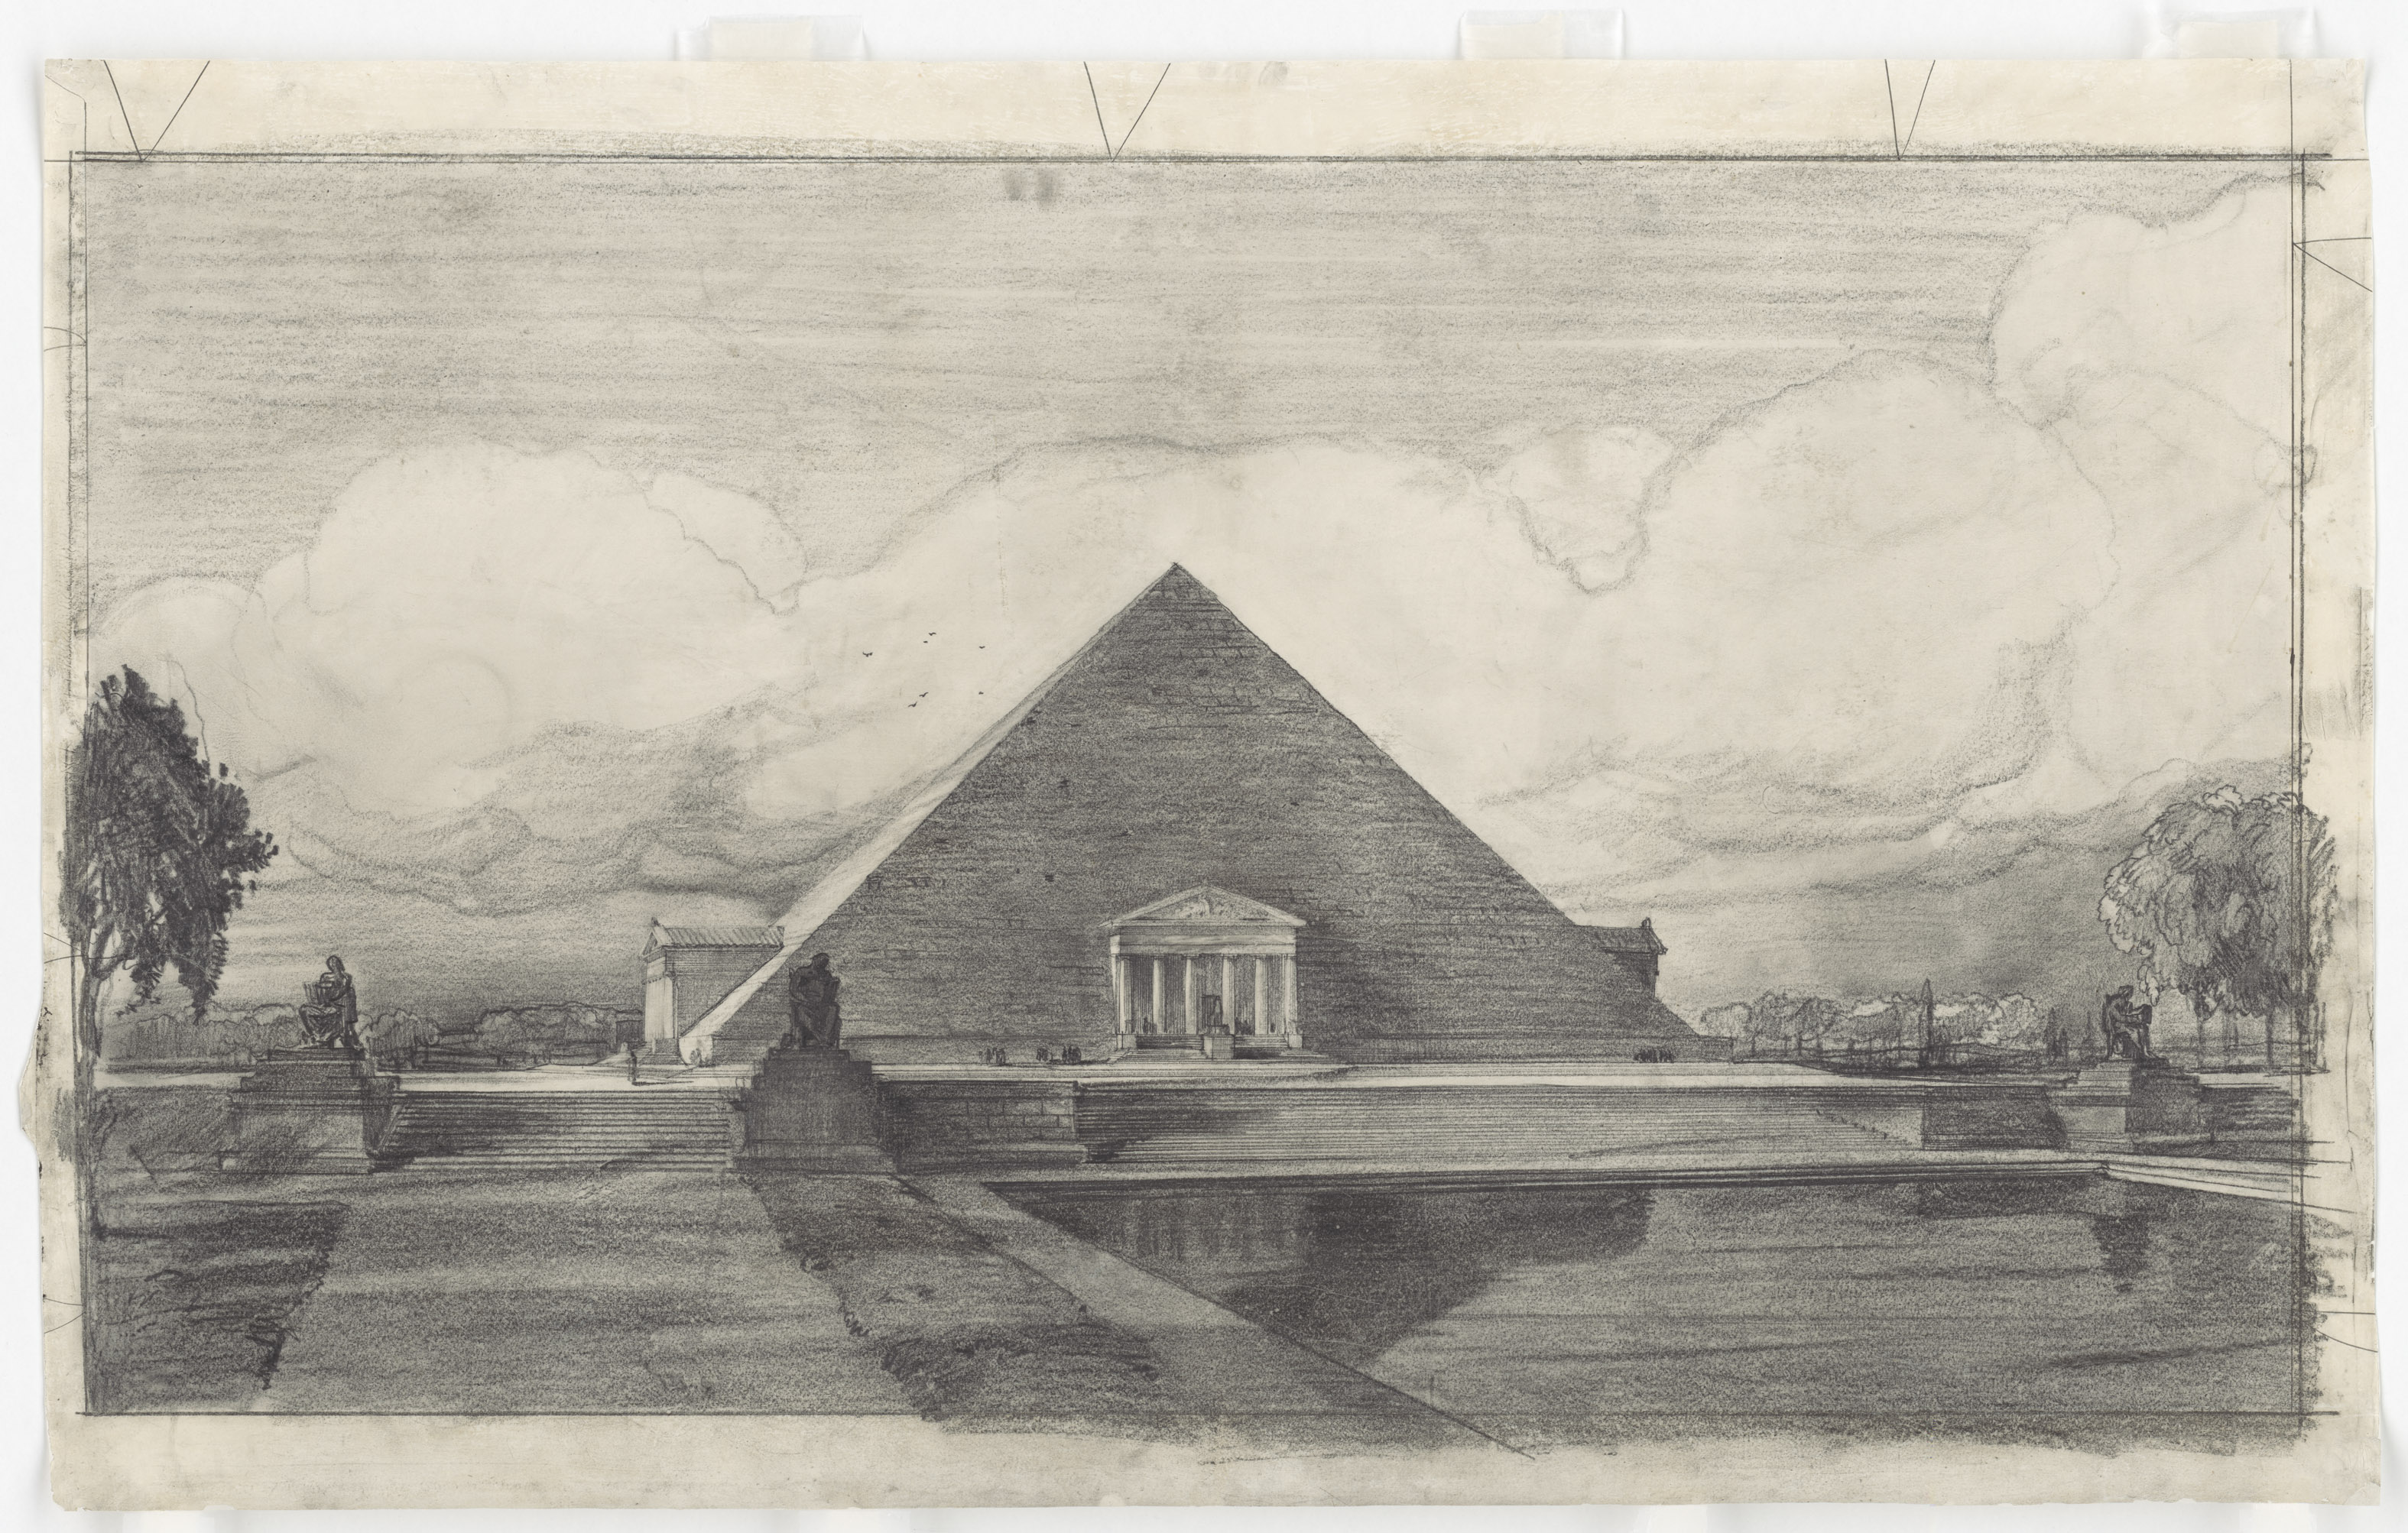 John Russell Pope's Competition Proposal for a Pyramid with Porticoes Style Monument to Abraham Lincoln